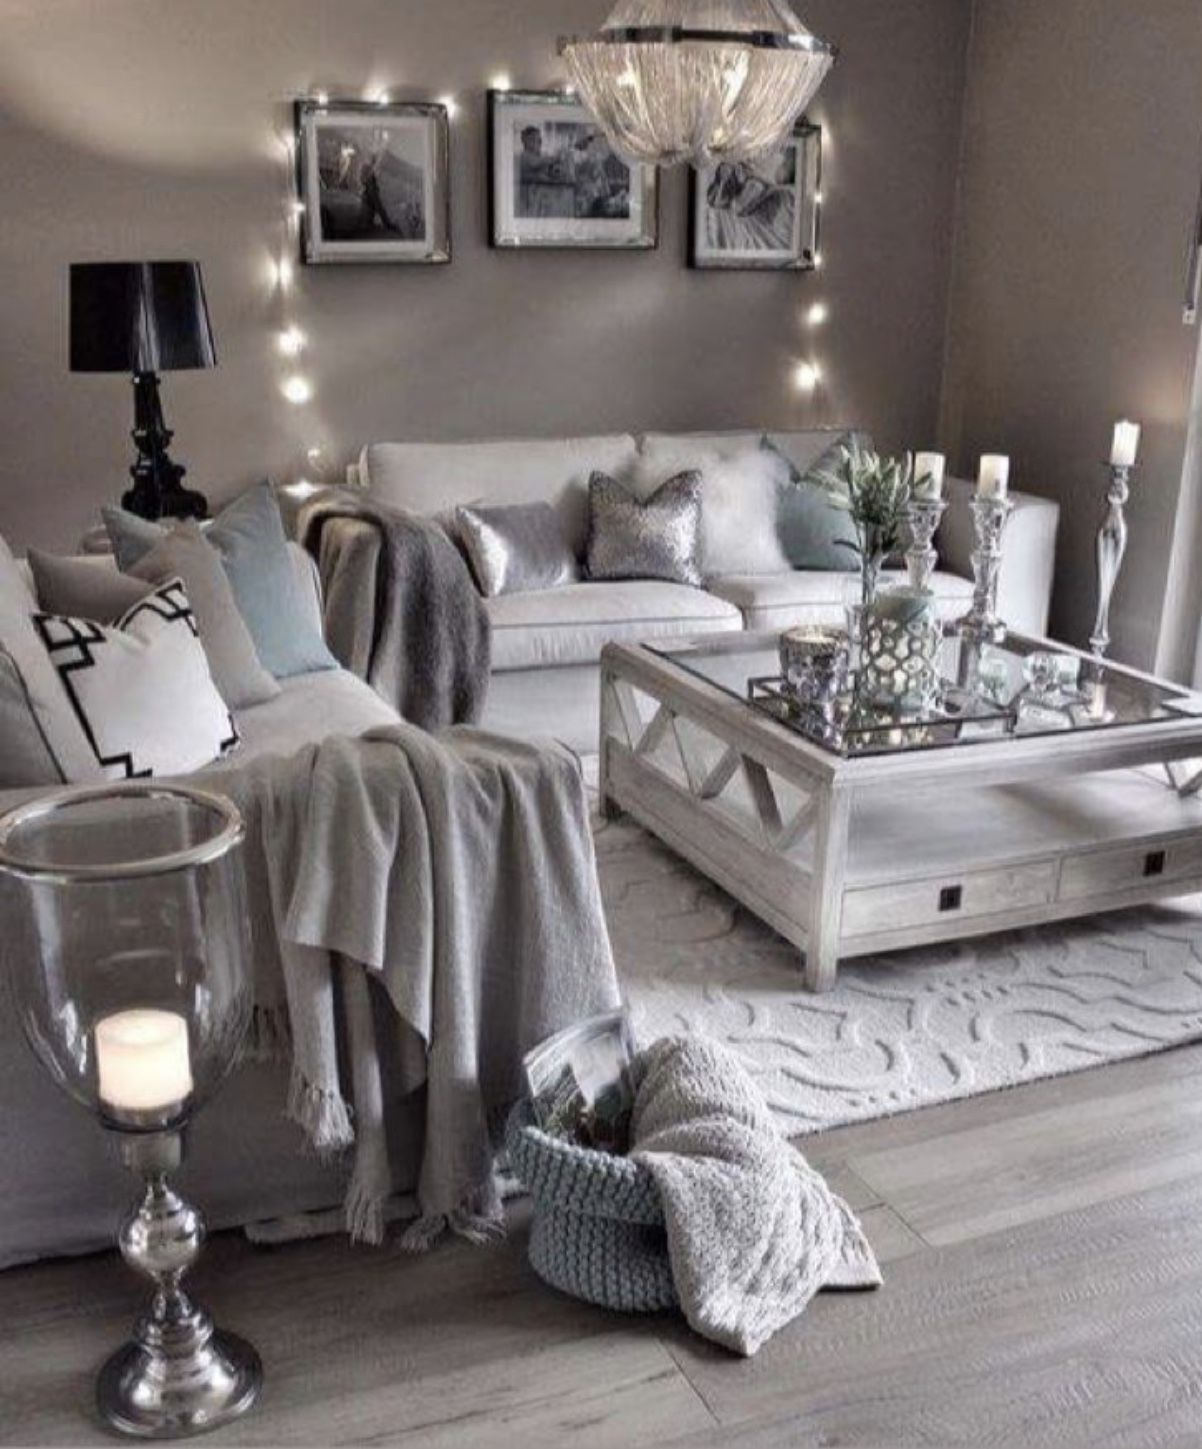 A Rustic Glam Bedroom Designed By Refresh Home And Feature